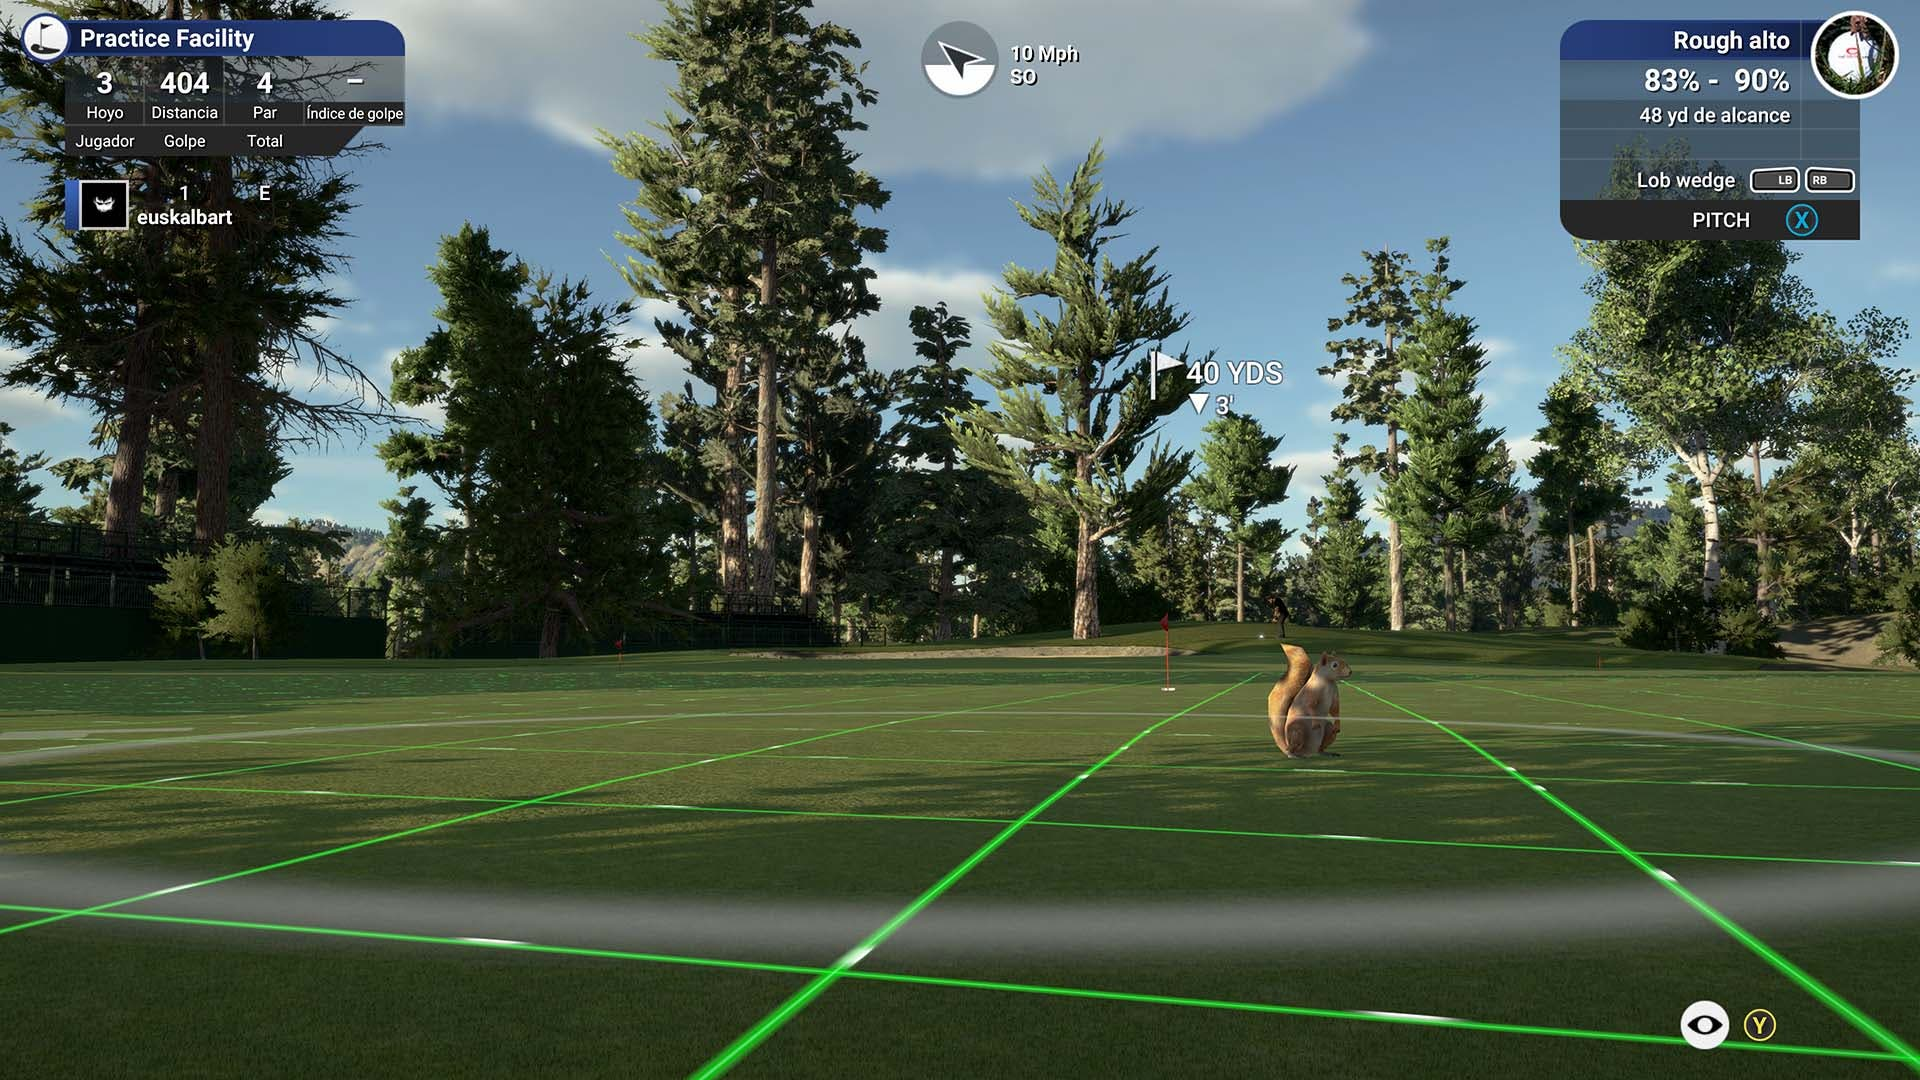 Análisis de The Golf Club 2019 featuring PGA Tour - Xbox One 8